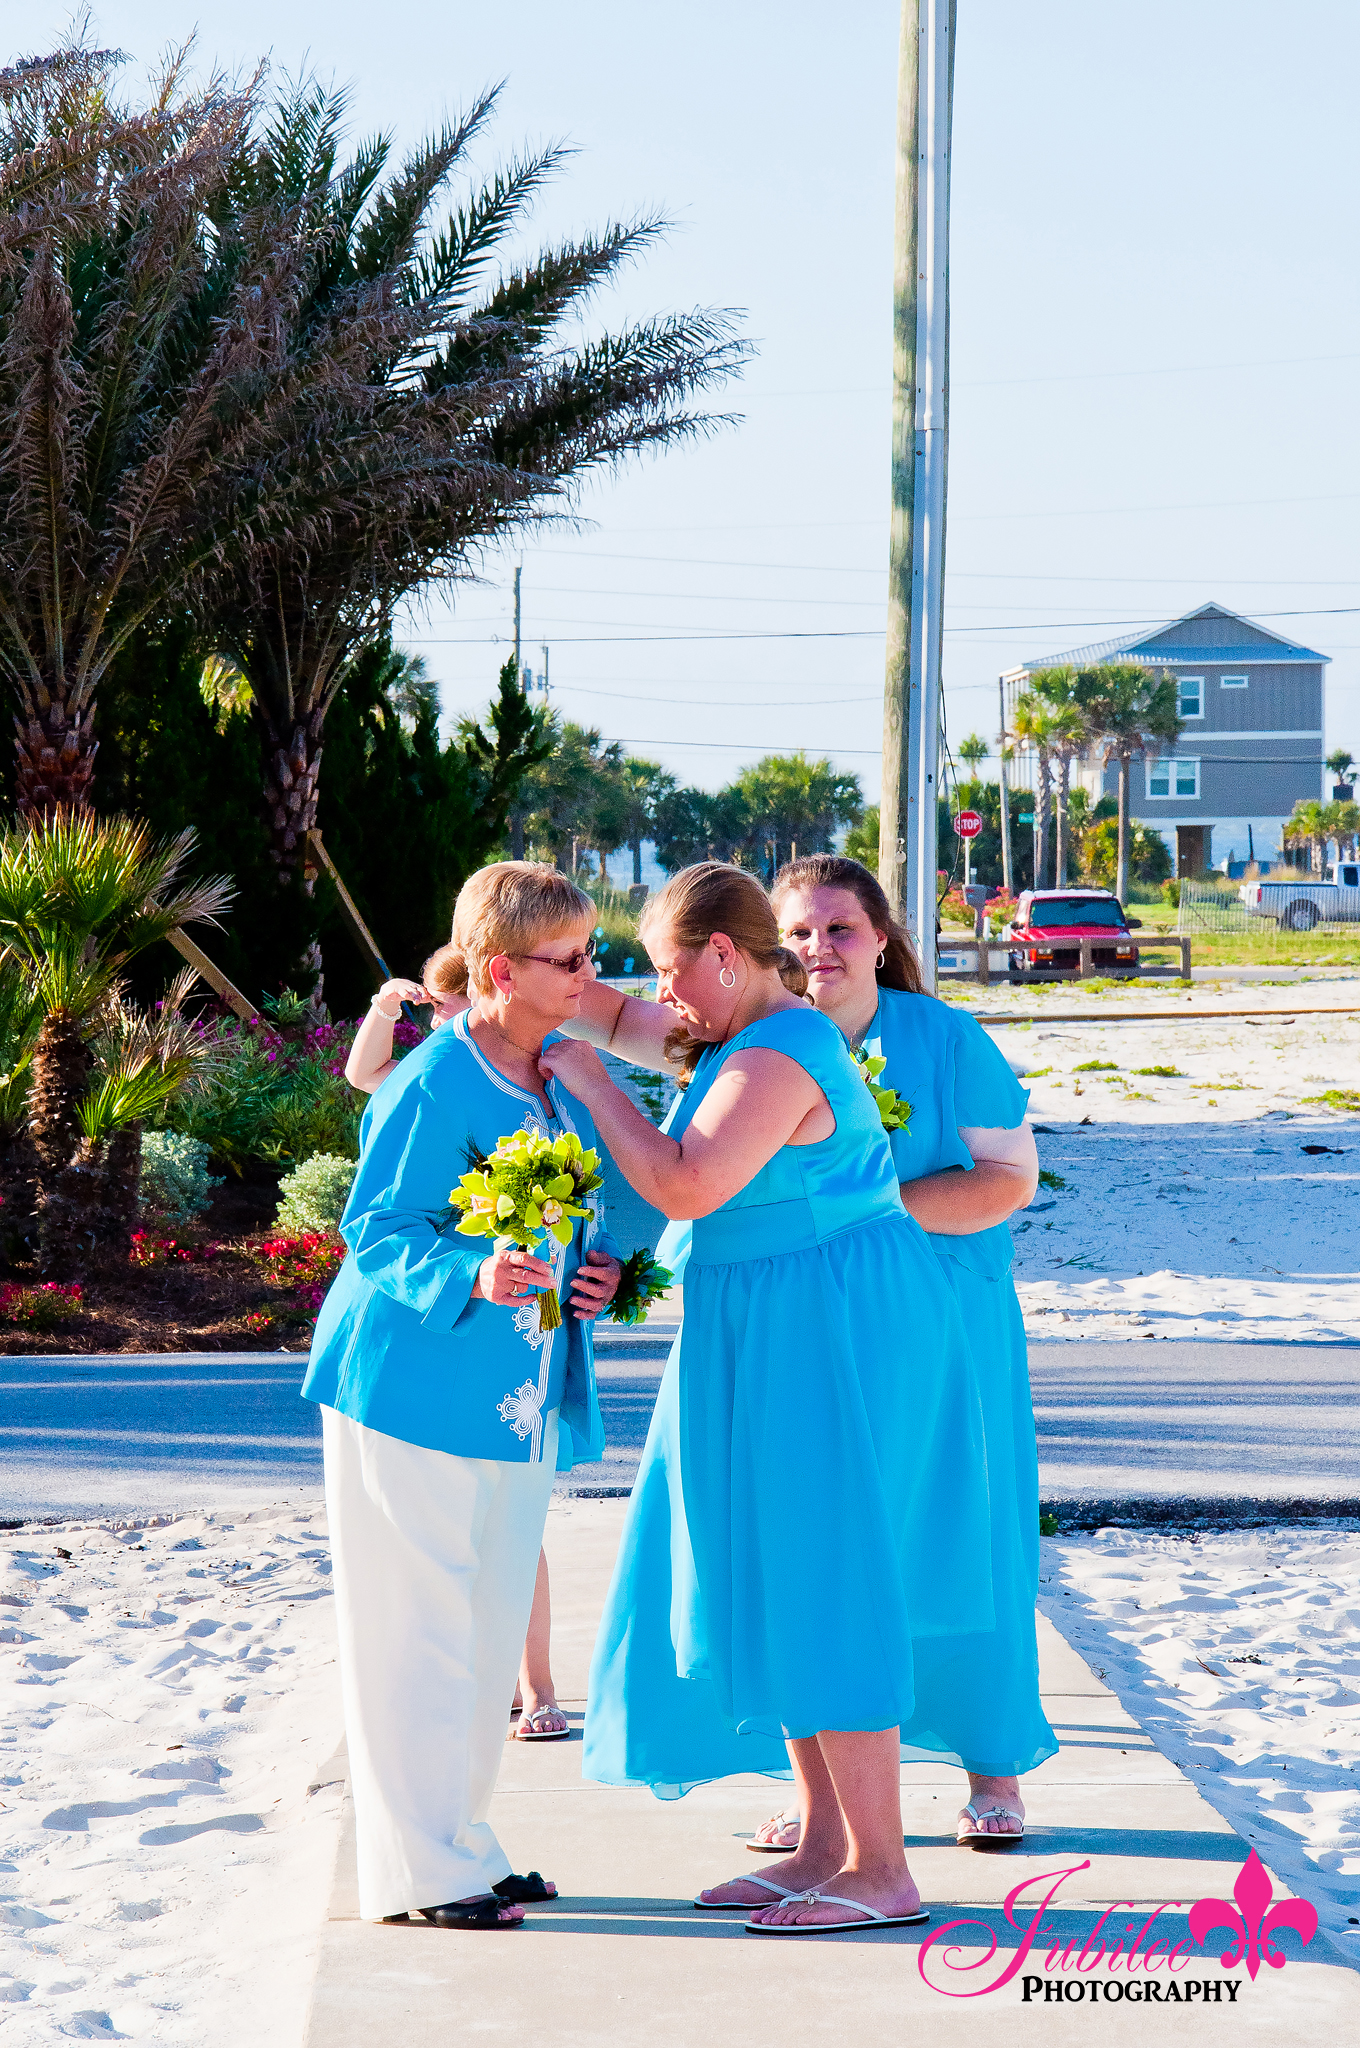 05052012 MCWedding2 0493 Misha + Chad   Pensacola Beach Wedding